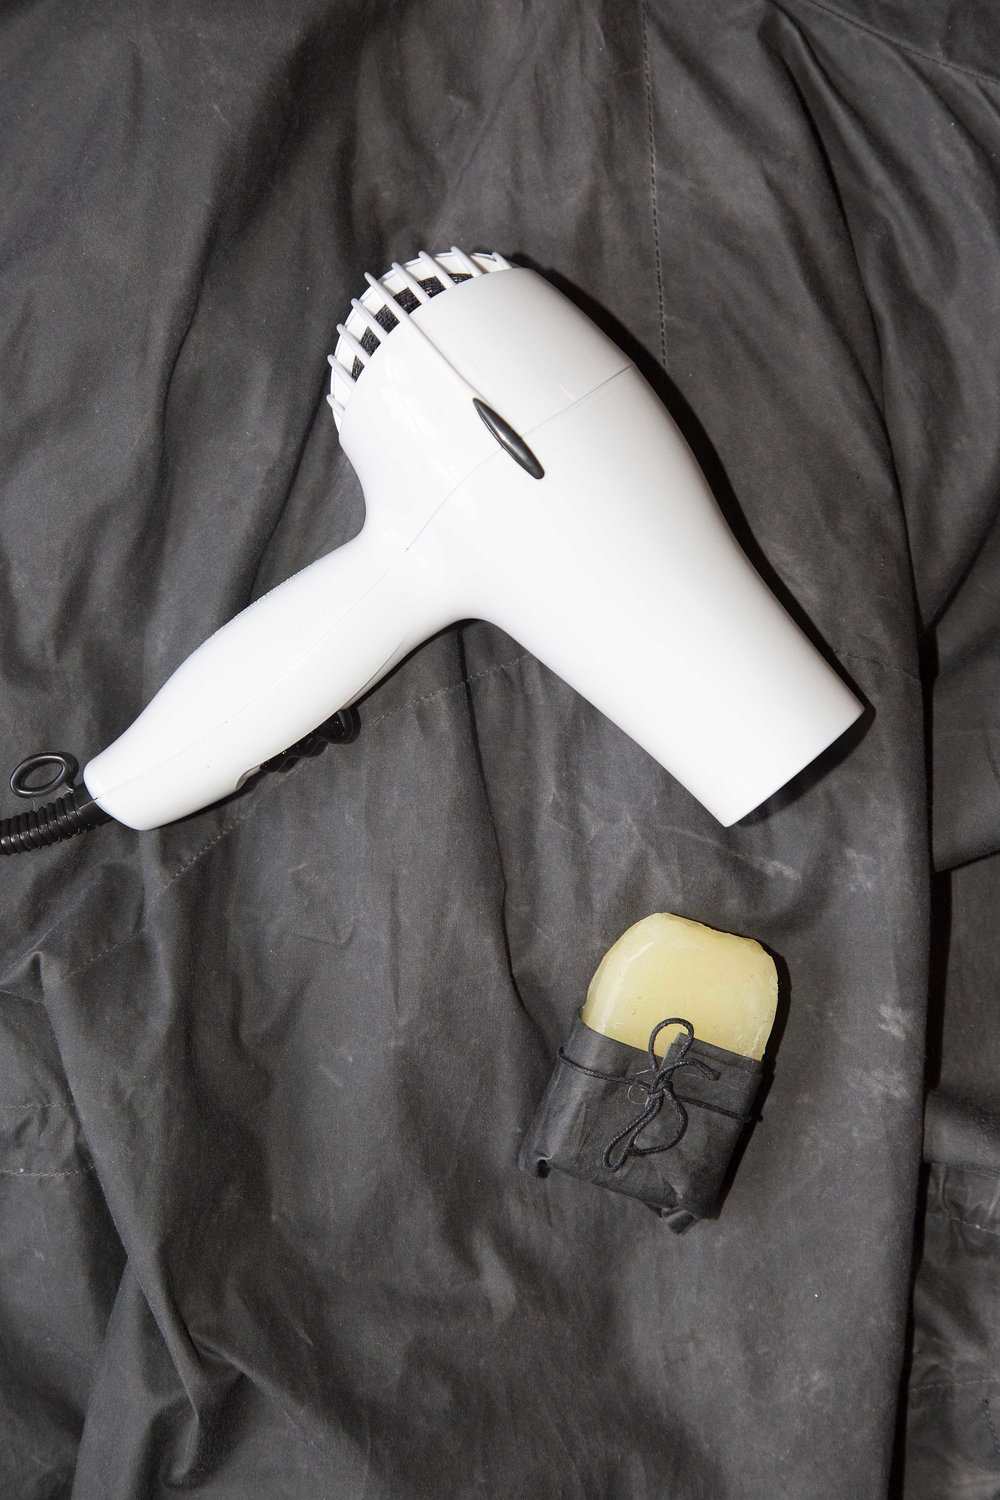 1.  Everything you need to reproof your trevor nathan raincoat!